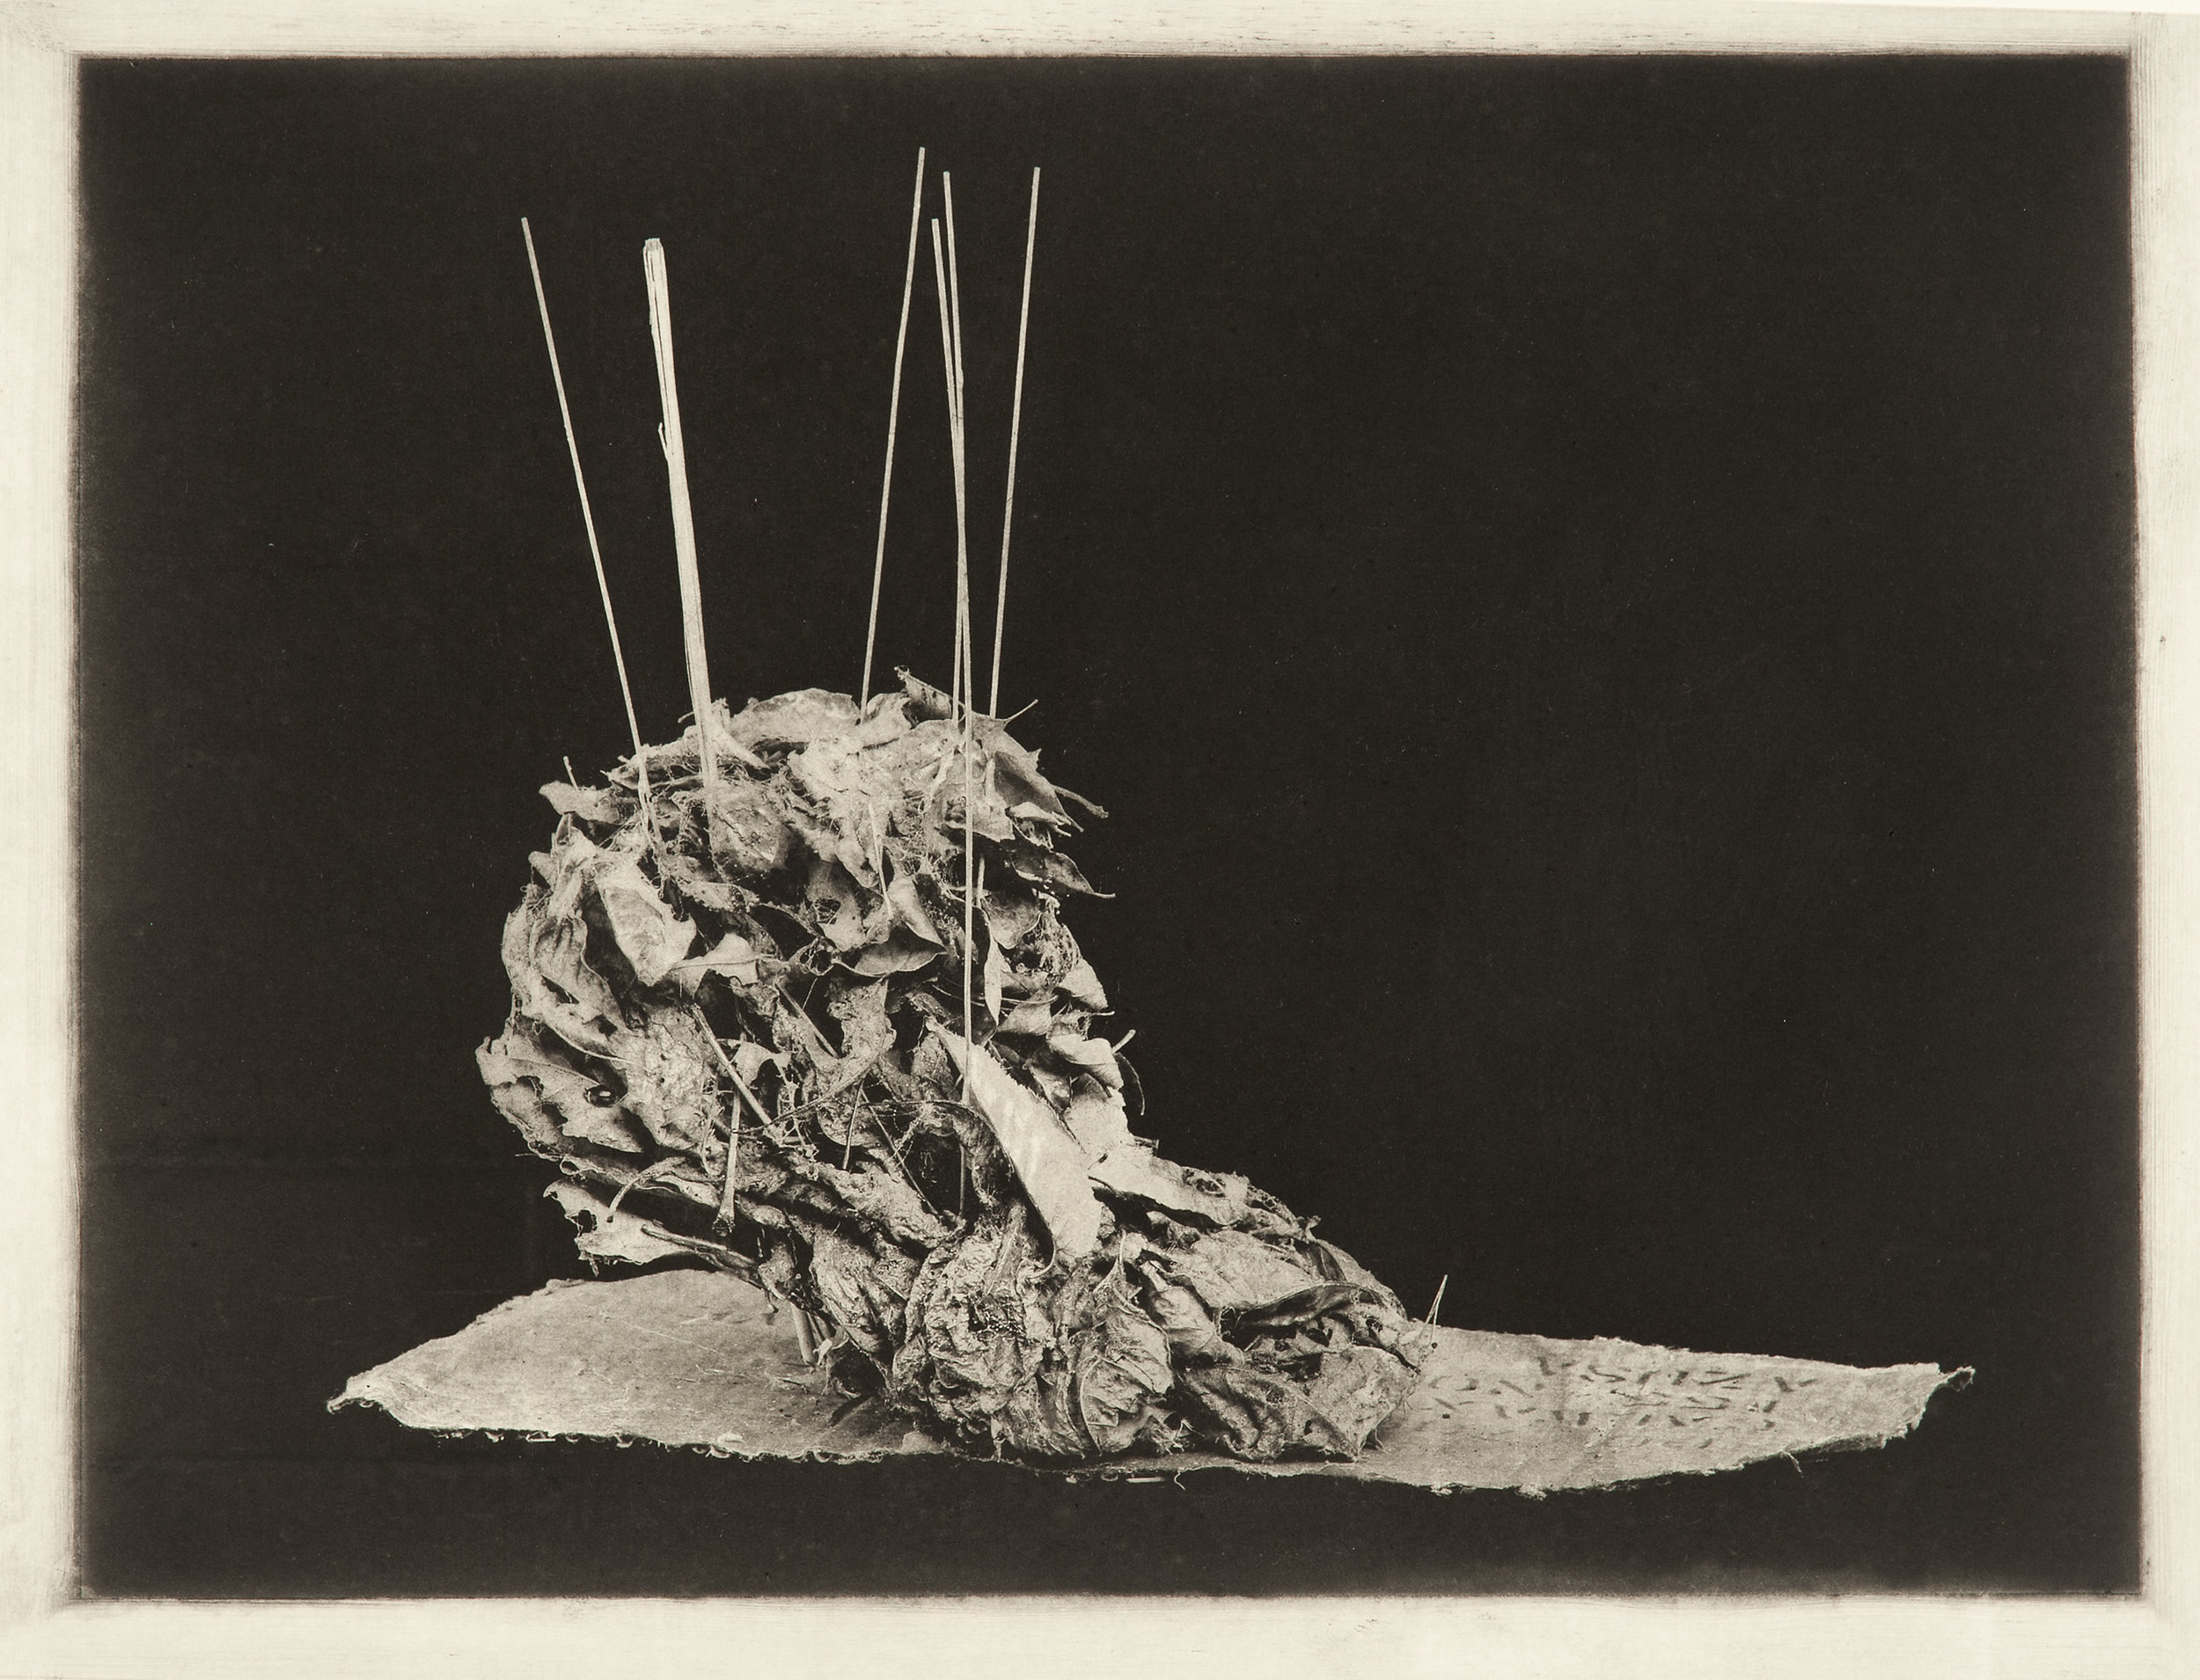 """""""Homage to Medaro Rosso"""", 22"""" x 30"""", photogravure of leaf sculpture"""